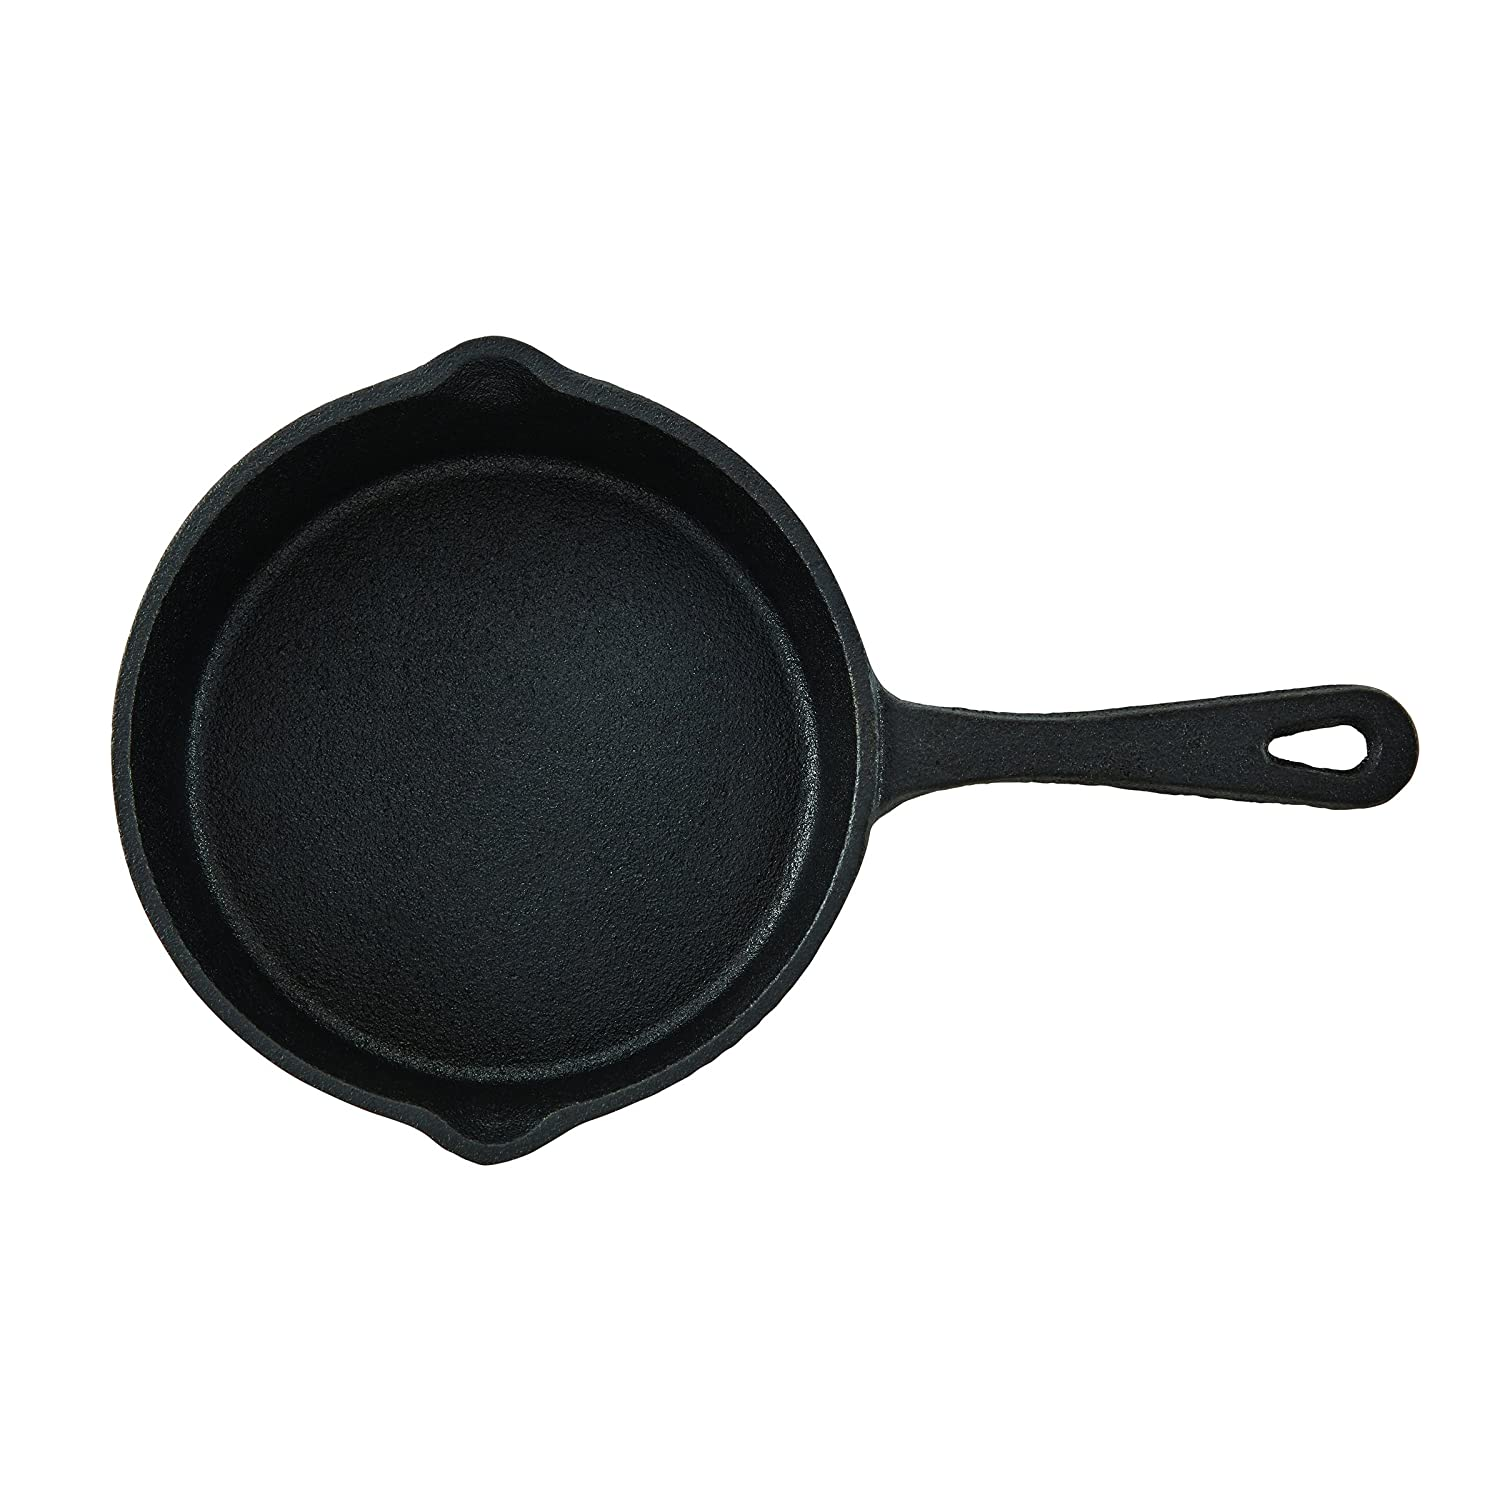 5.4 inch (13.7cm) pre-seasoned cast iron skillet